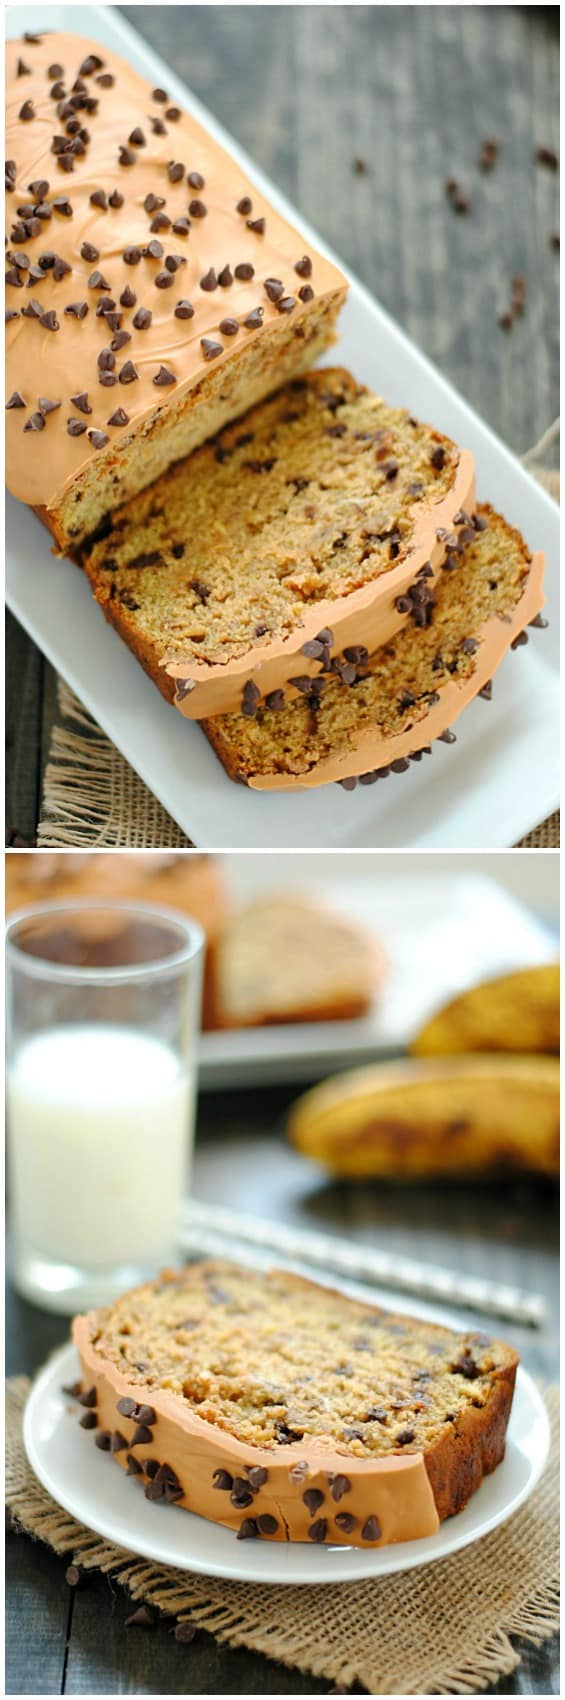 Scotcheroo Banana Bread | www.somethingswanky.com